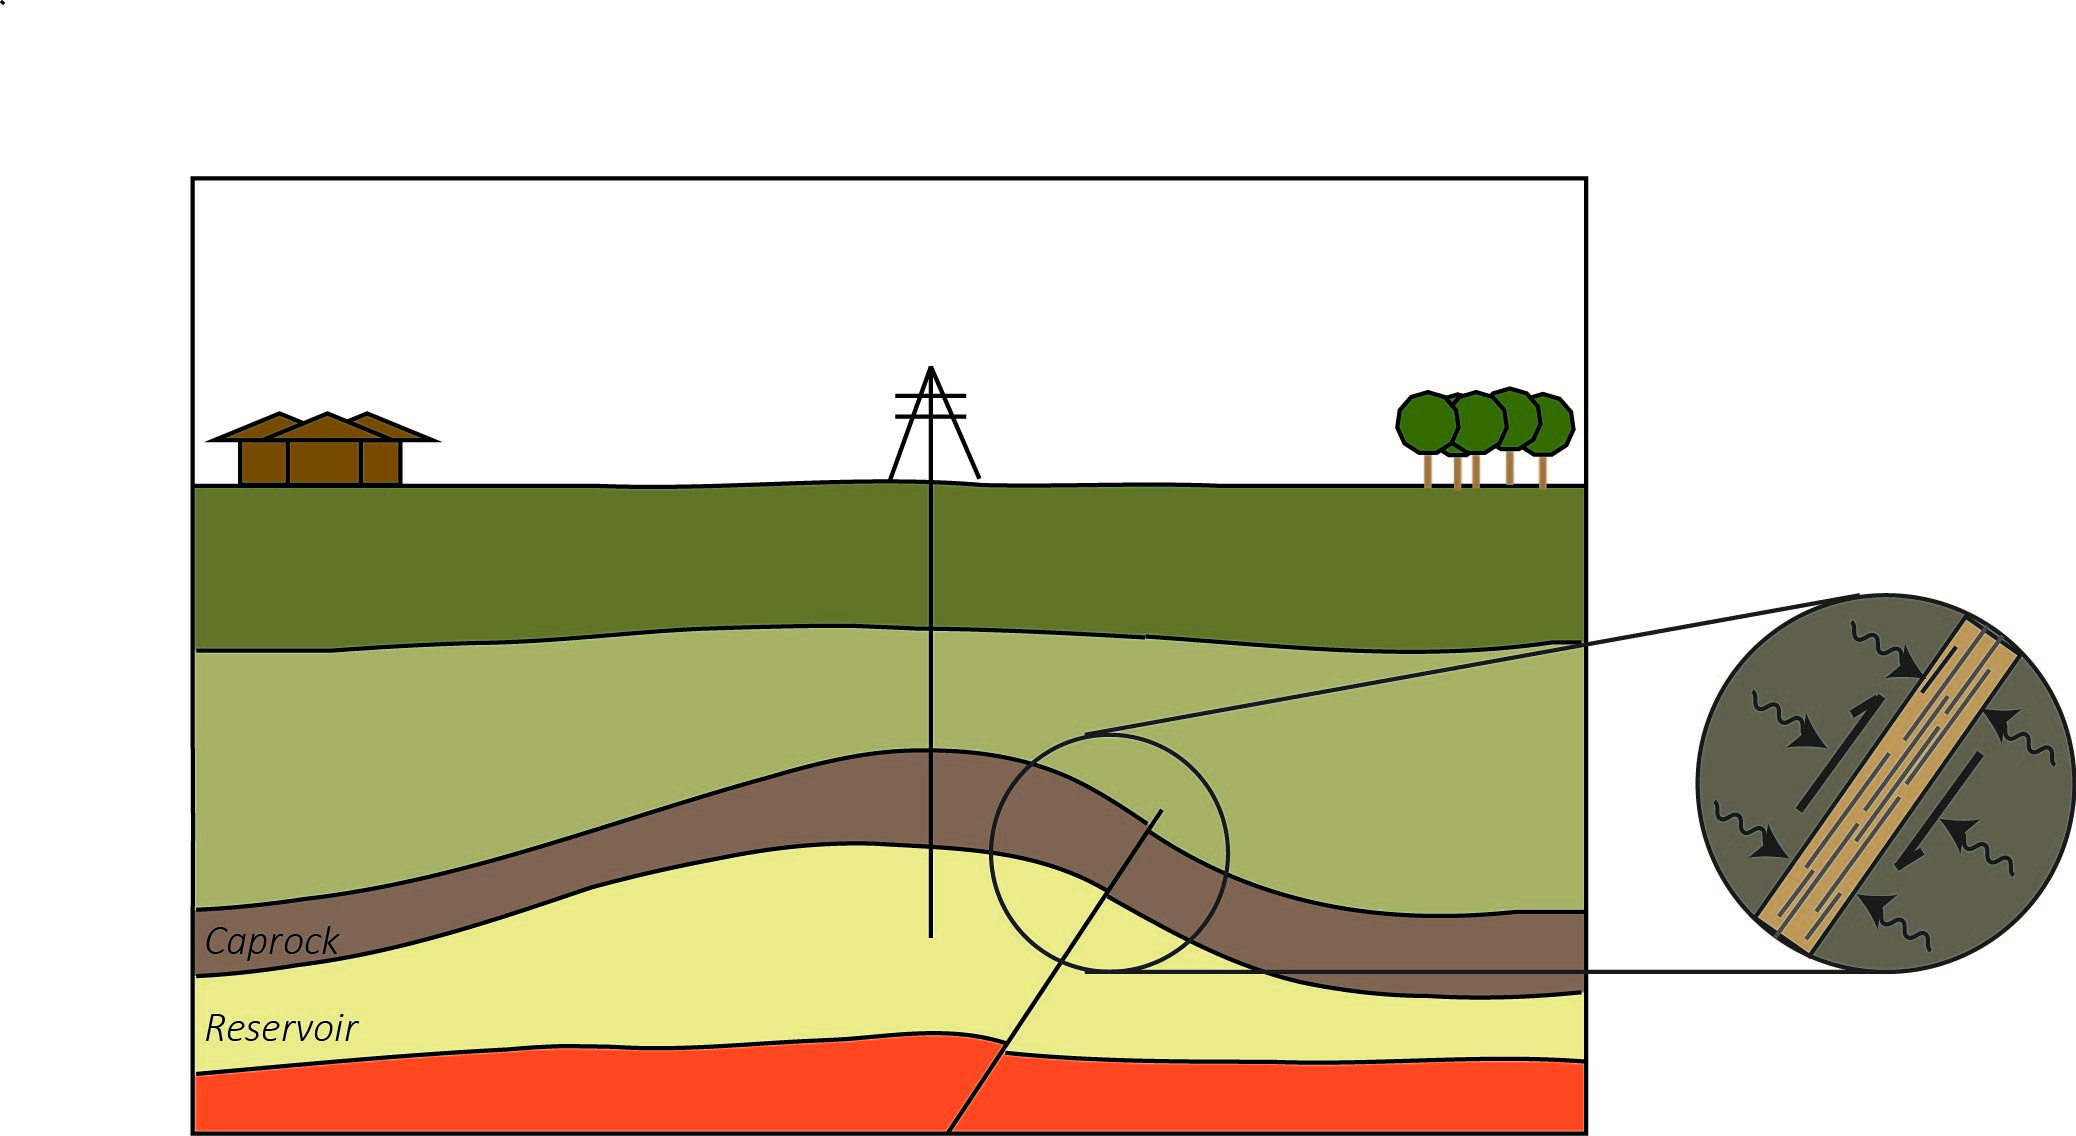 Schematic diagram showing a CO2 storage reservoir and overlying caprock, several km's below the Earth's surface, which are cross-cut by a fault.